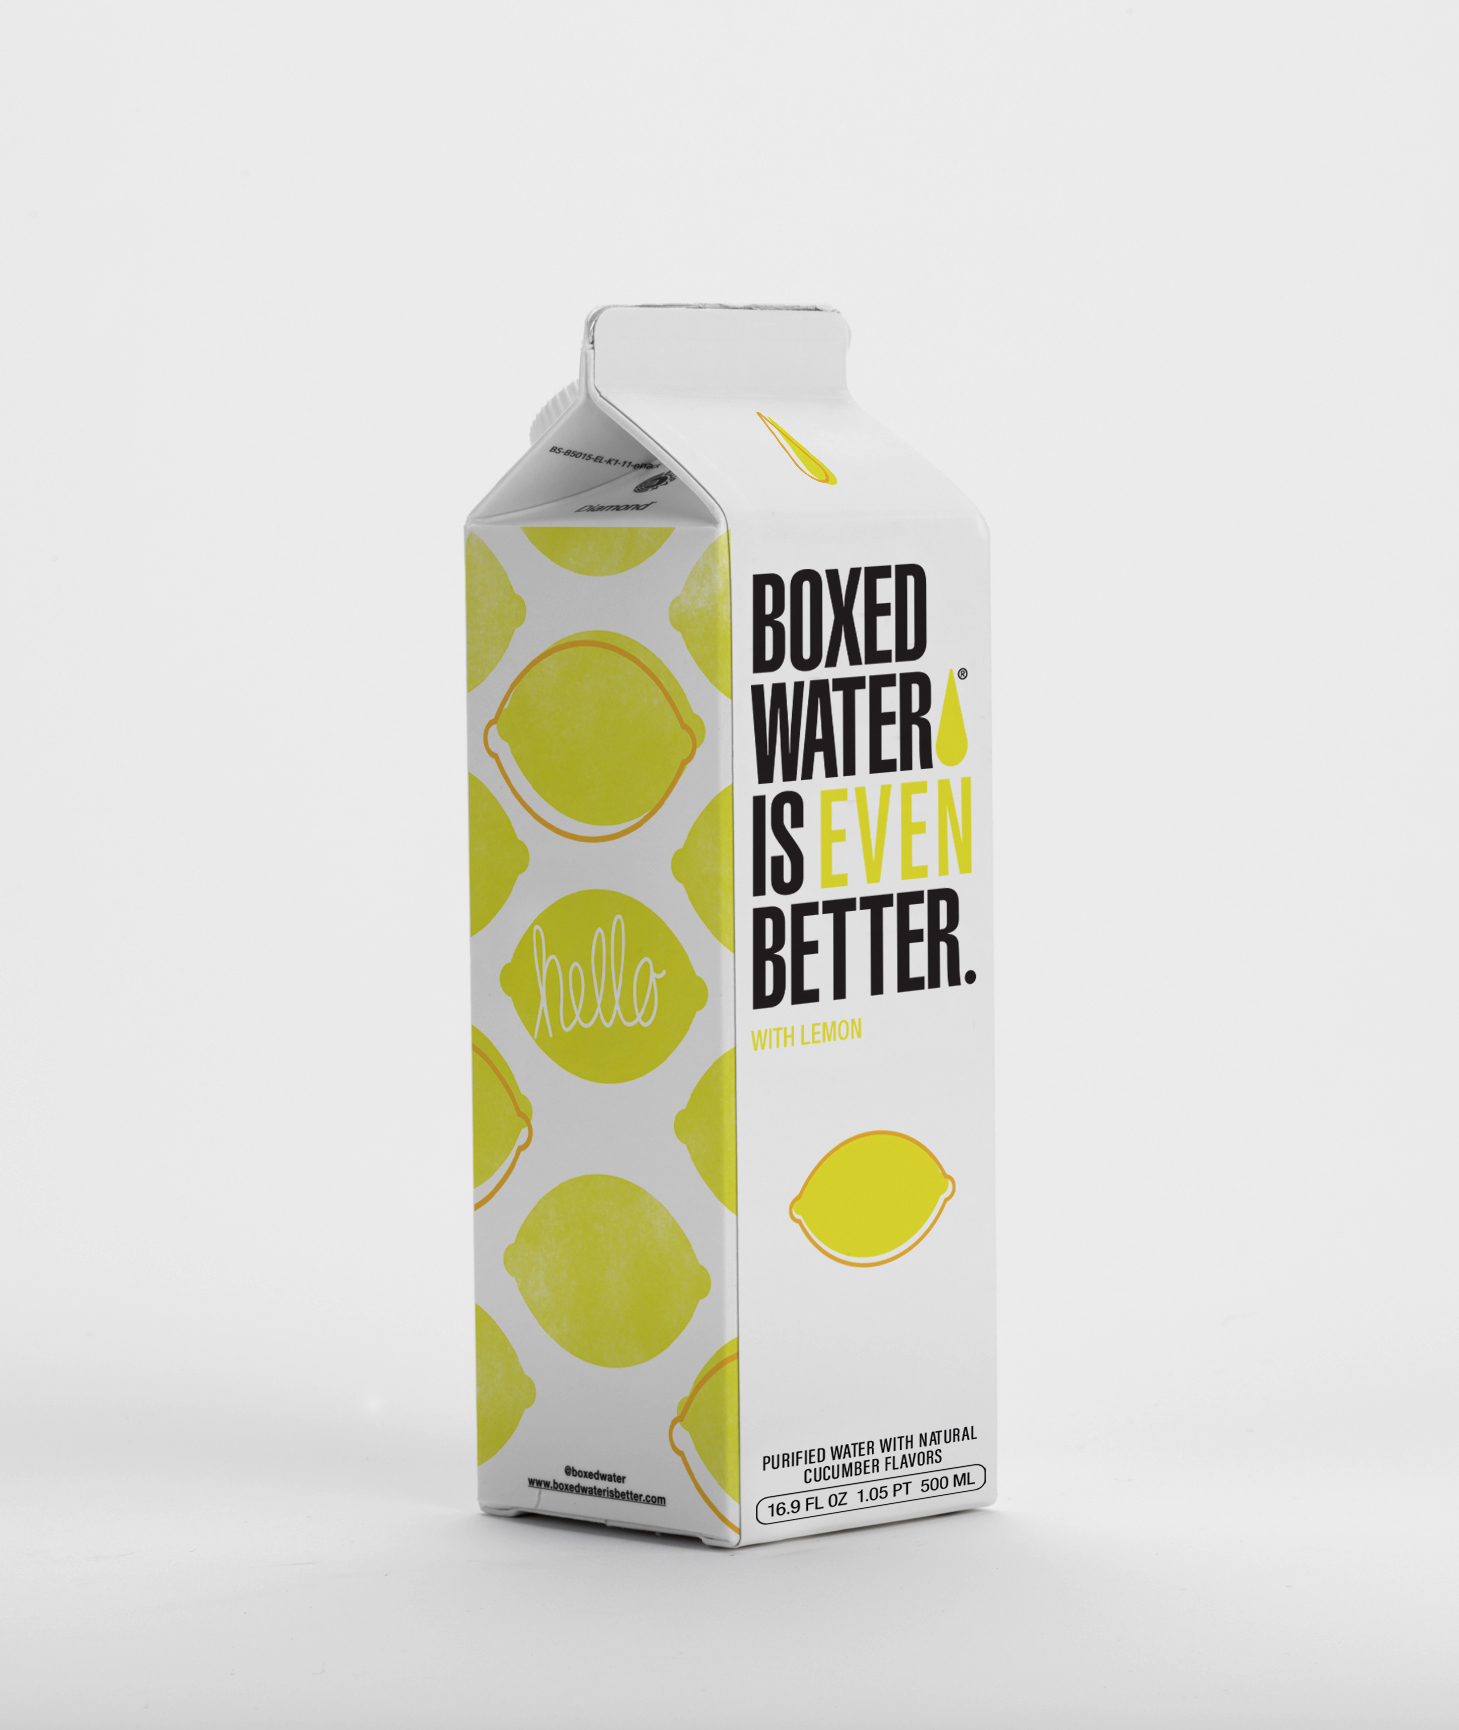 Boxed Water Is Even Better Lemon